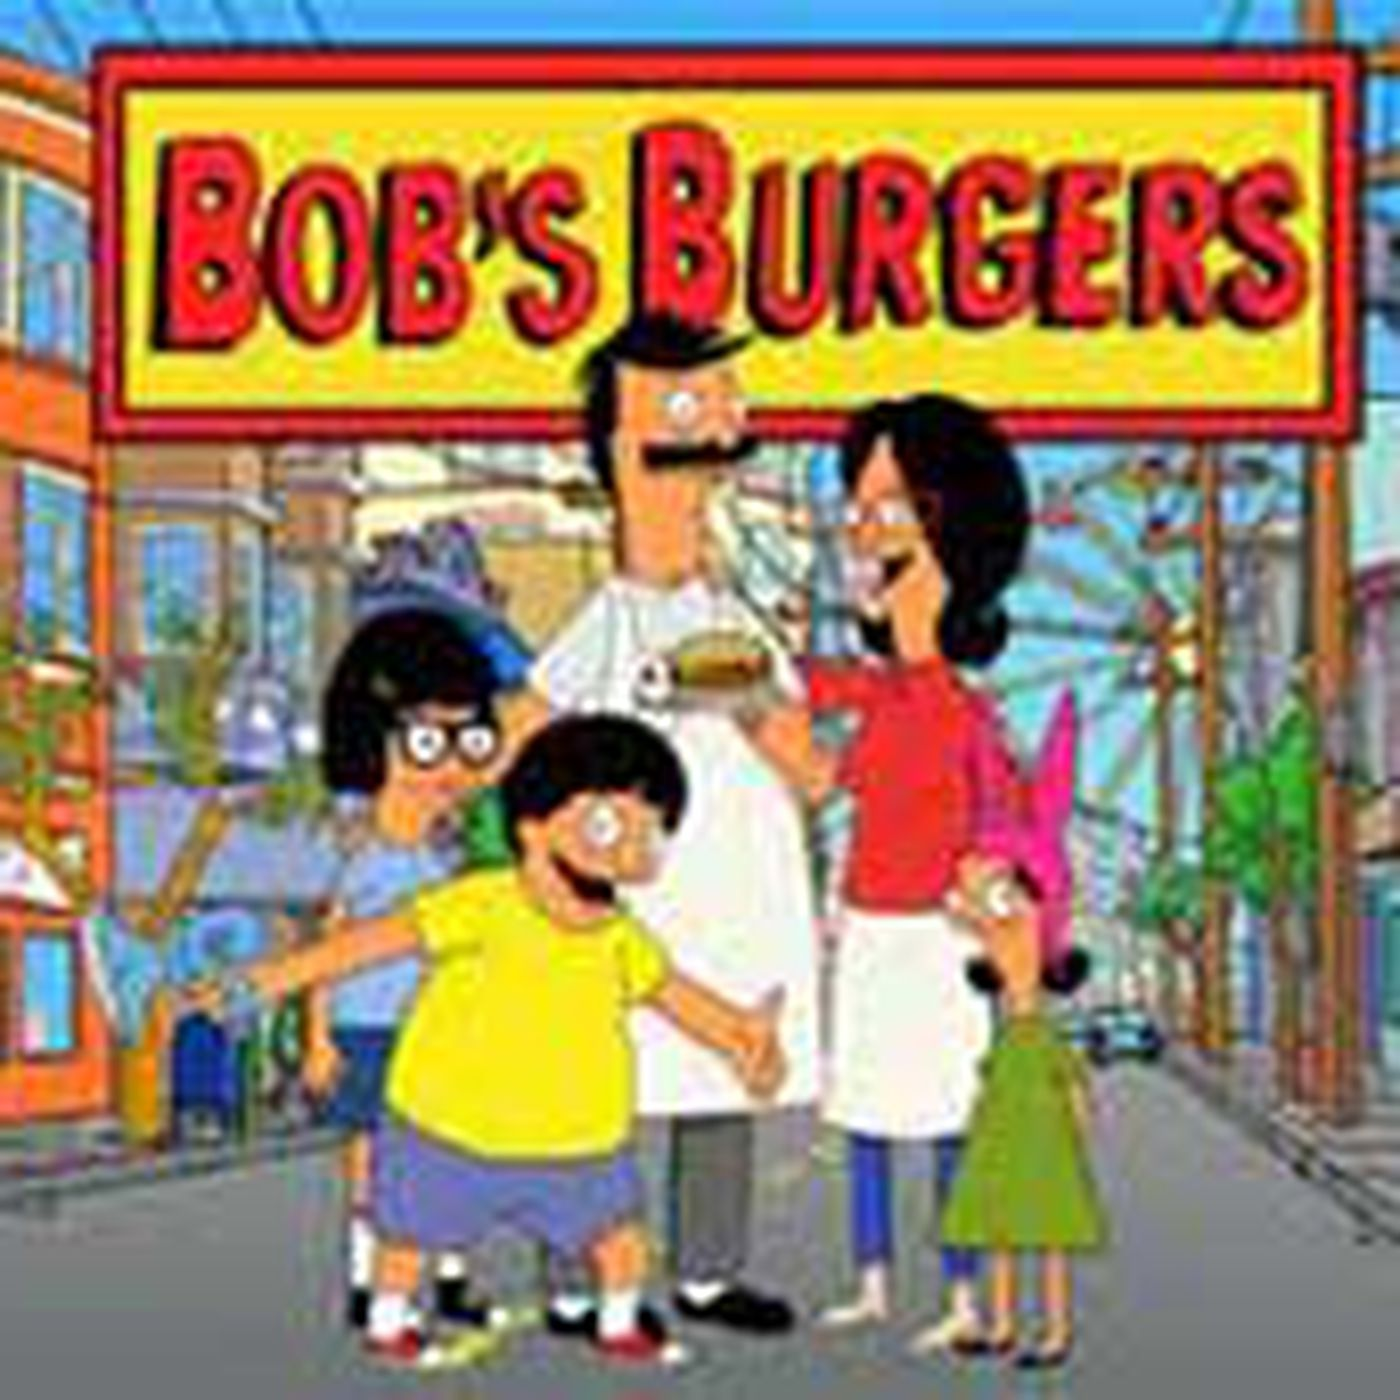 Free Bobs Burgers Porn bob's burgers giving out free fatburgers today - eater chicago